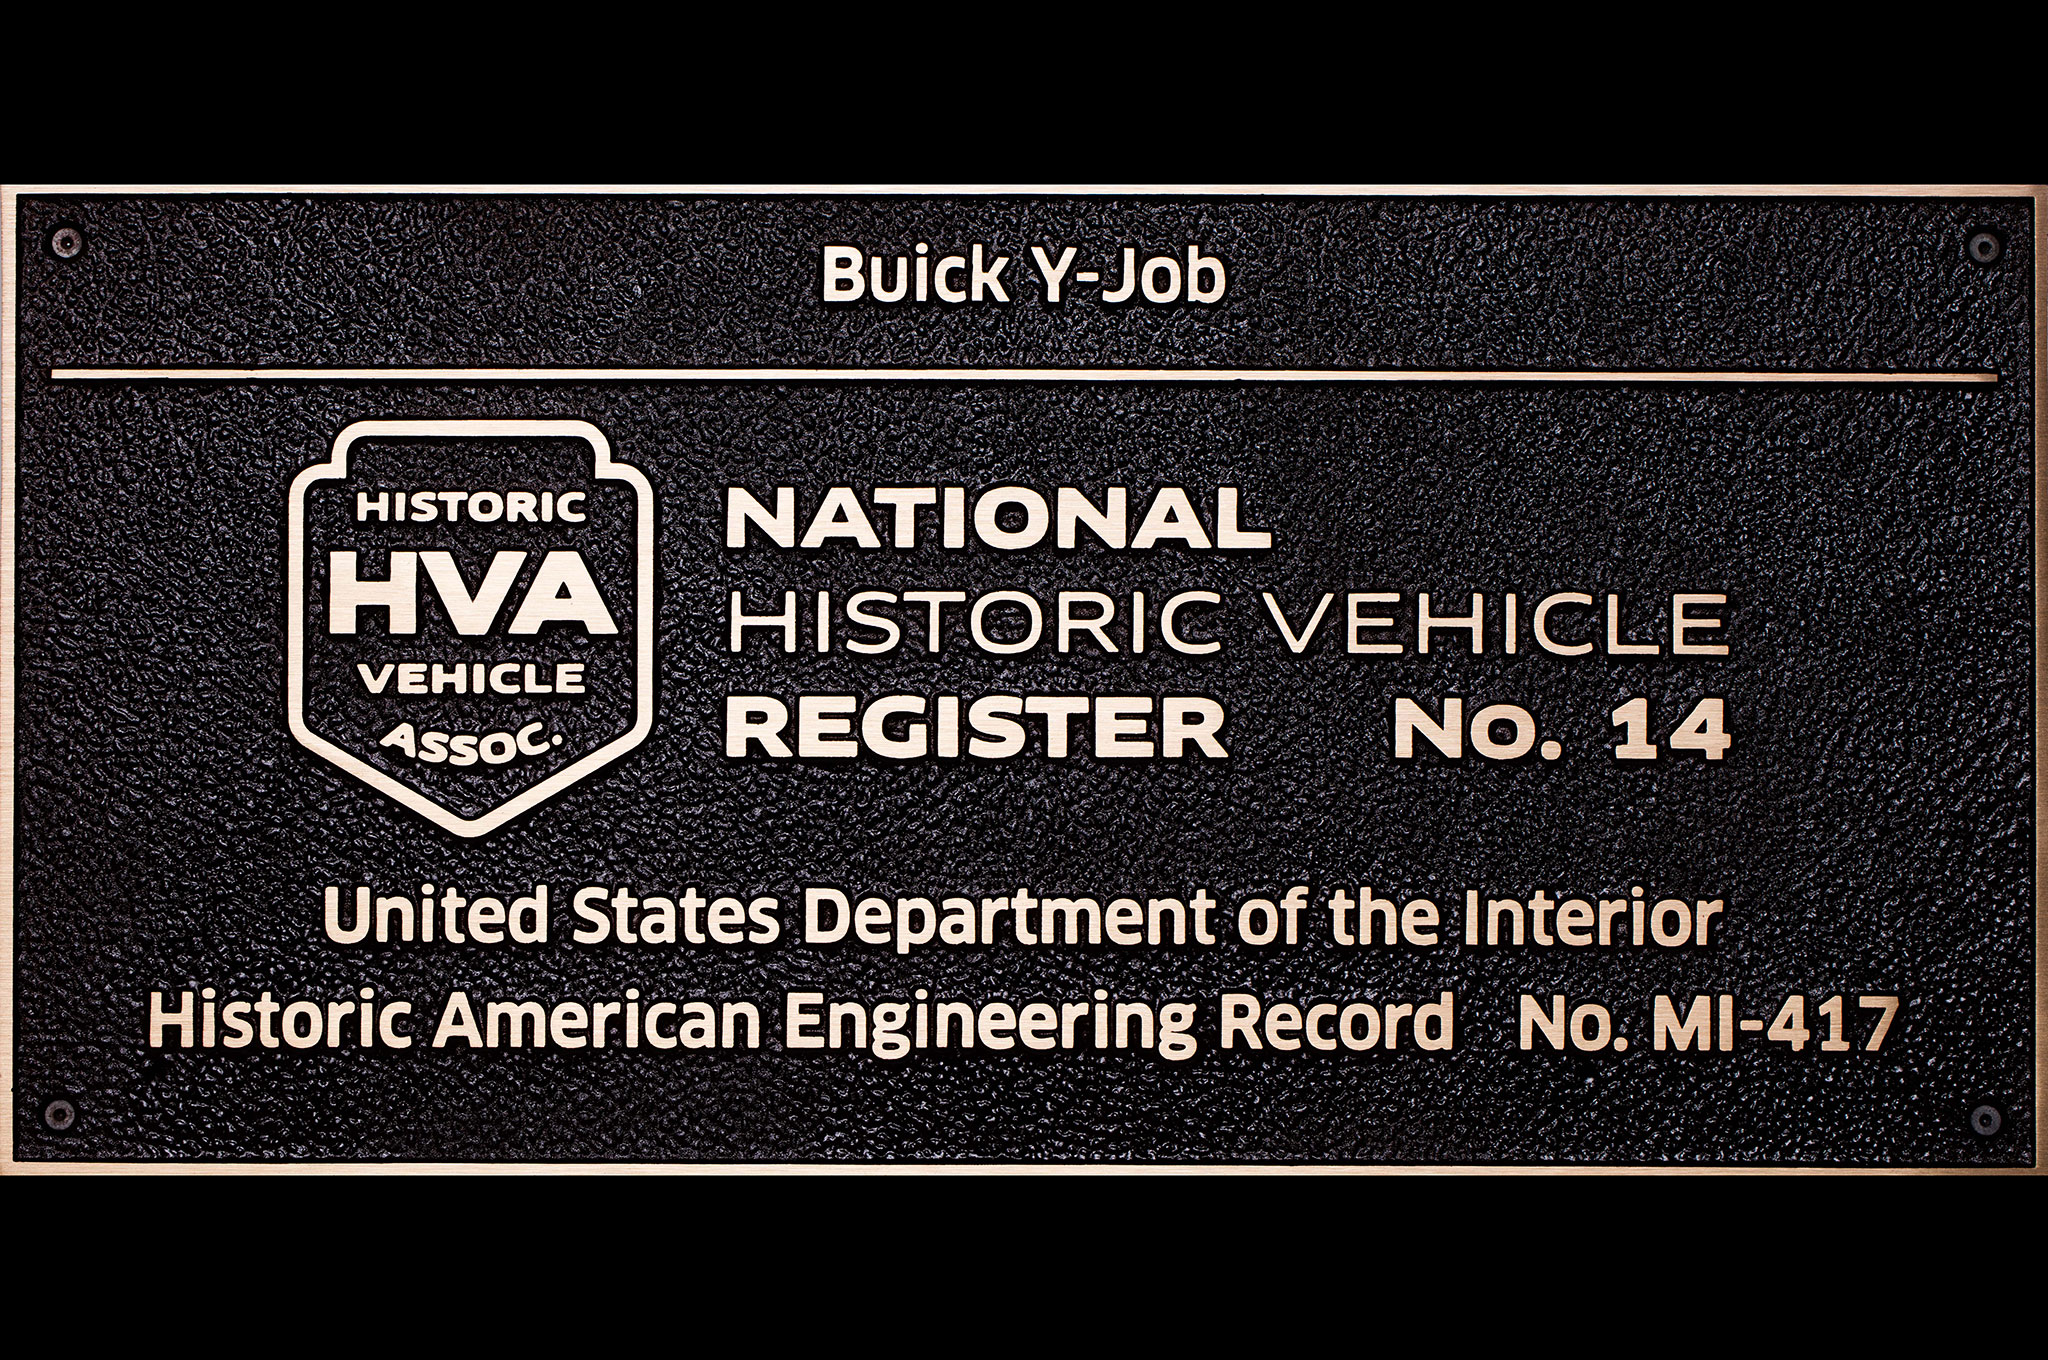 1938 Buick Y-Job Concept Added to National Historic Vehicle Register